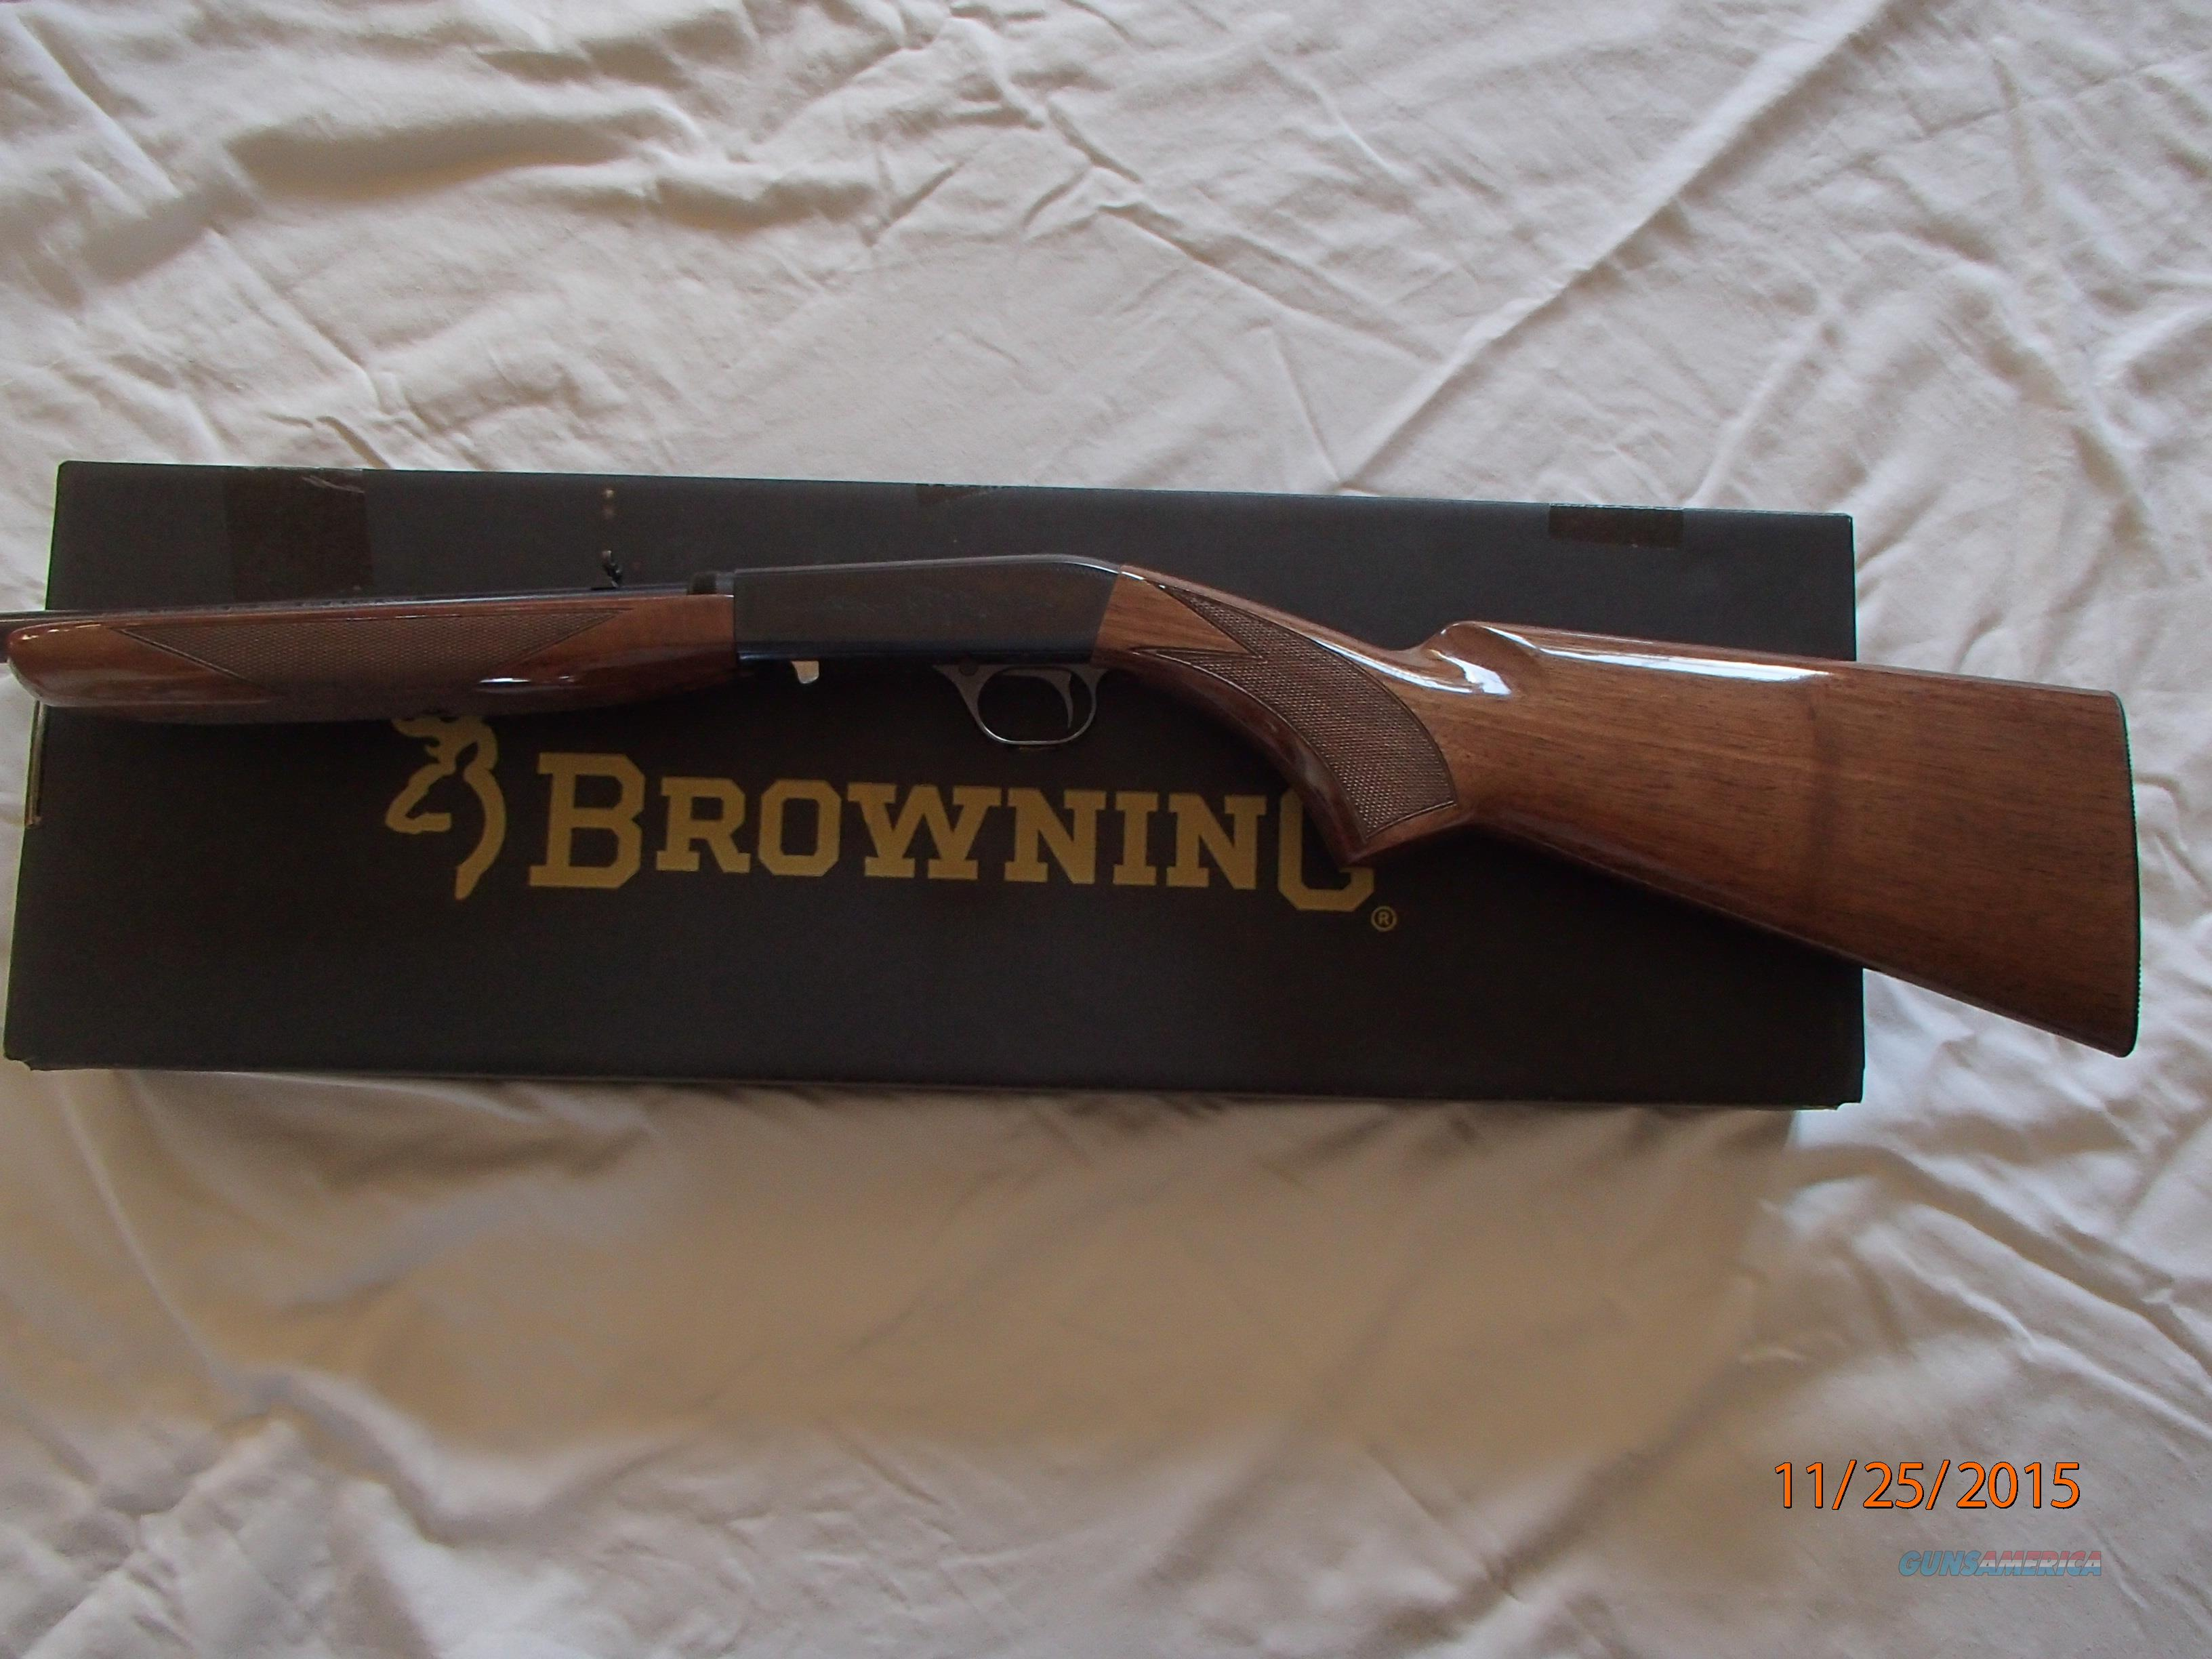 Browning 22 Auto .22 Long Rifle  Guns > Rifles > Browning Rifles > Semi Auto > Hunting